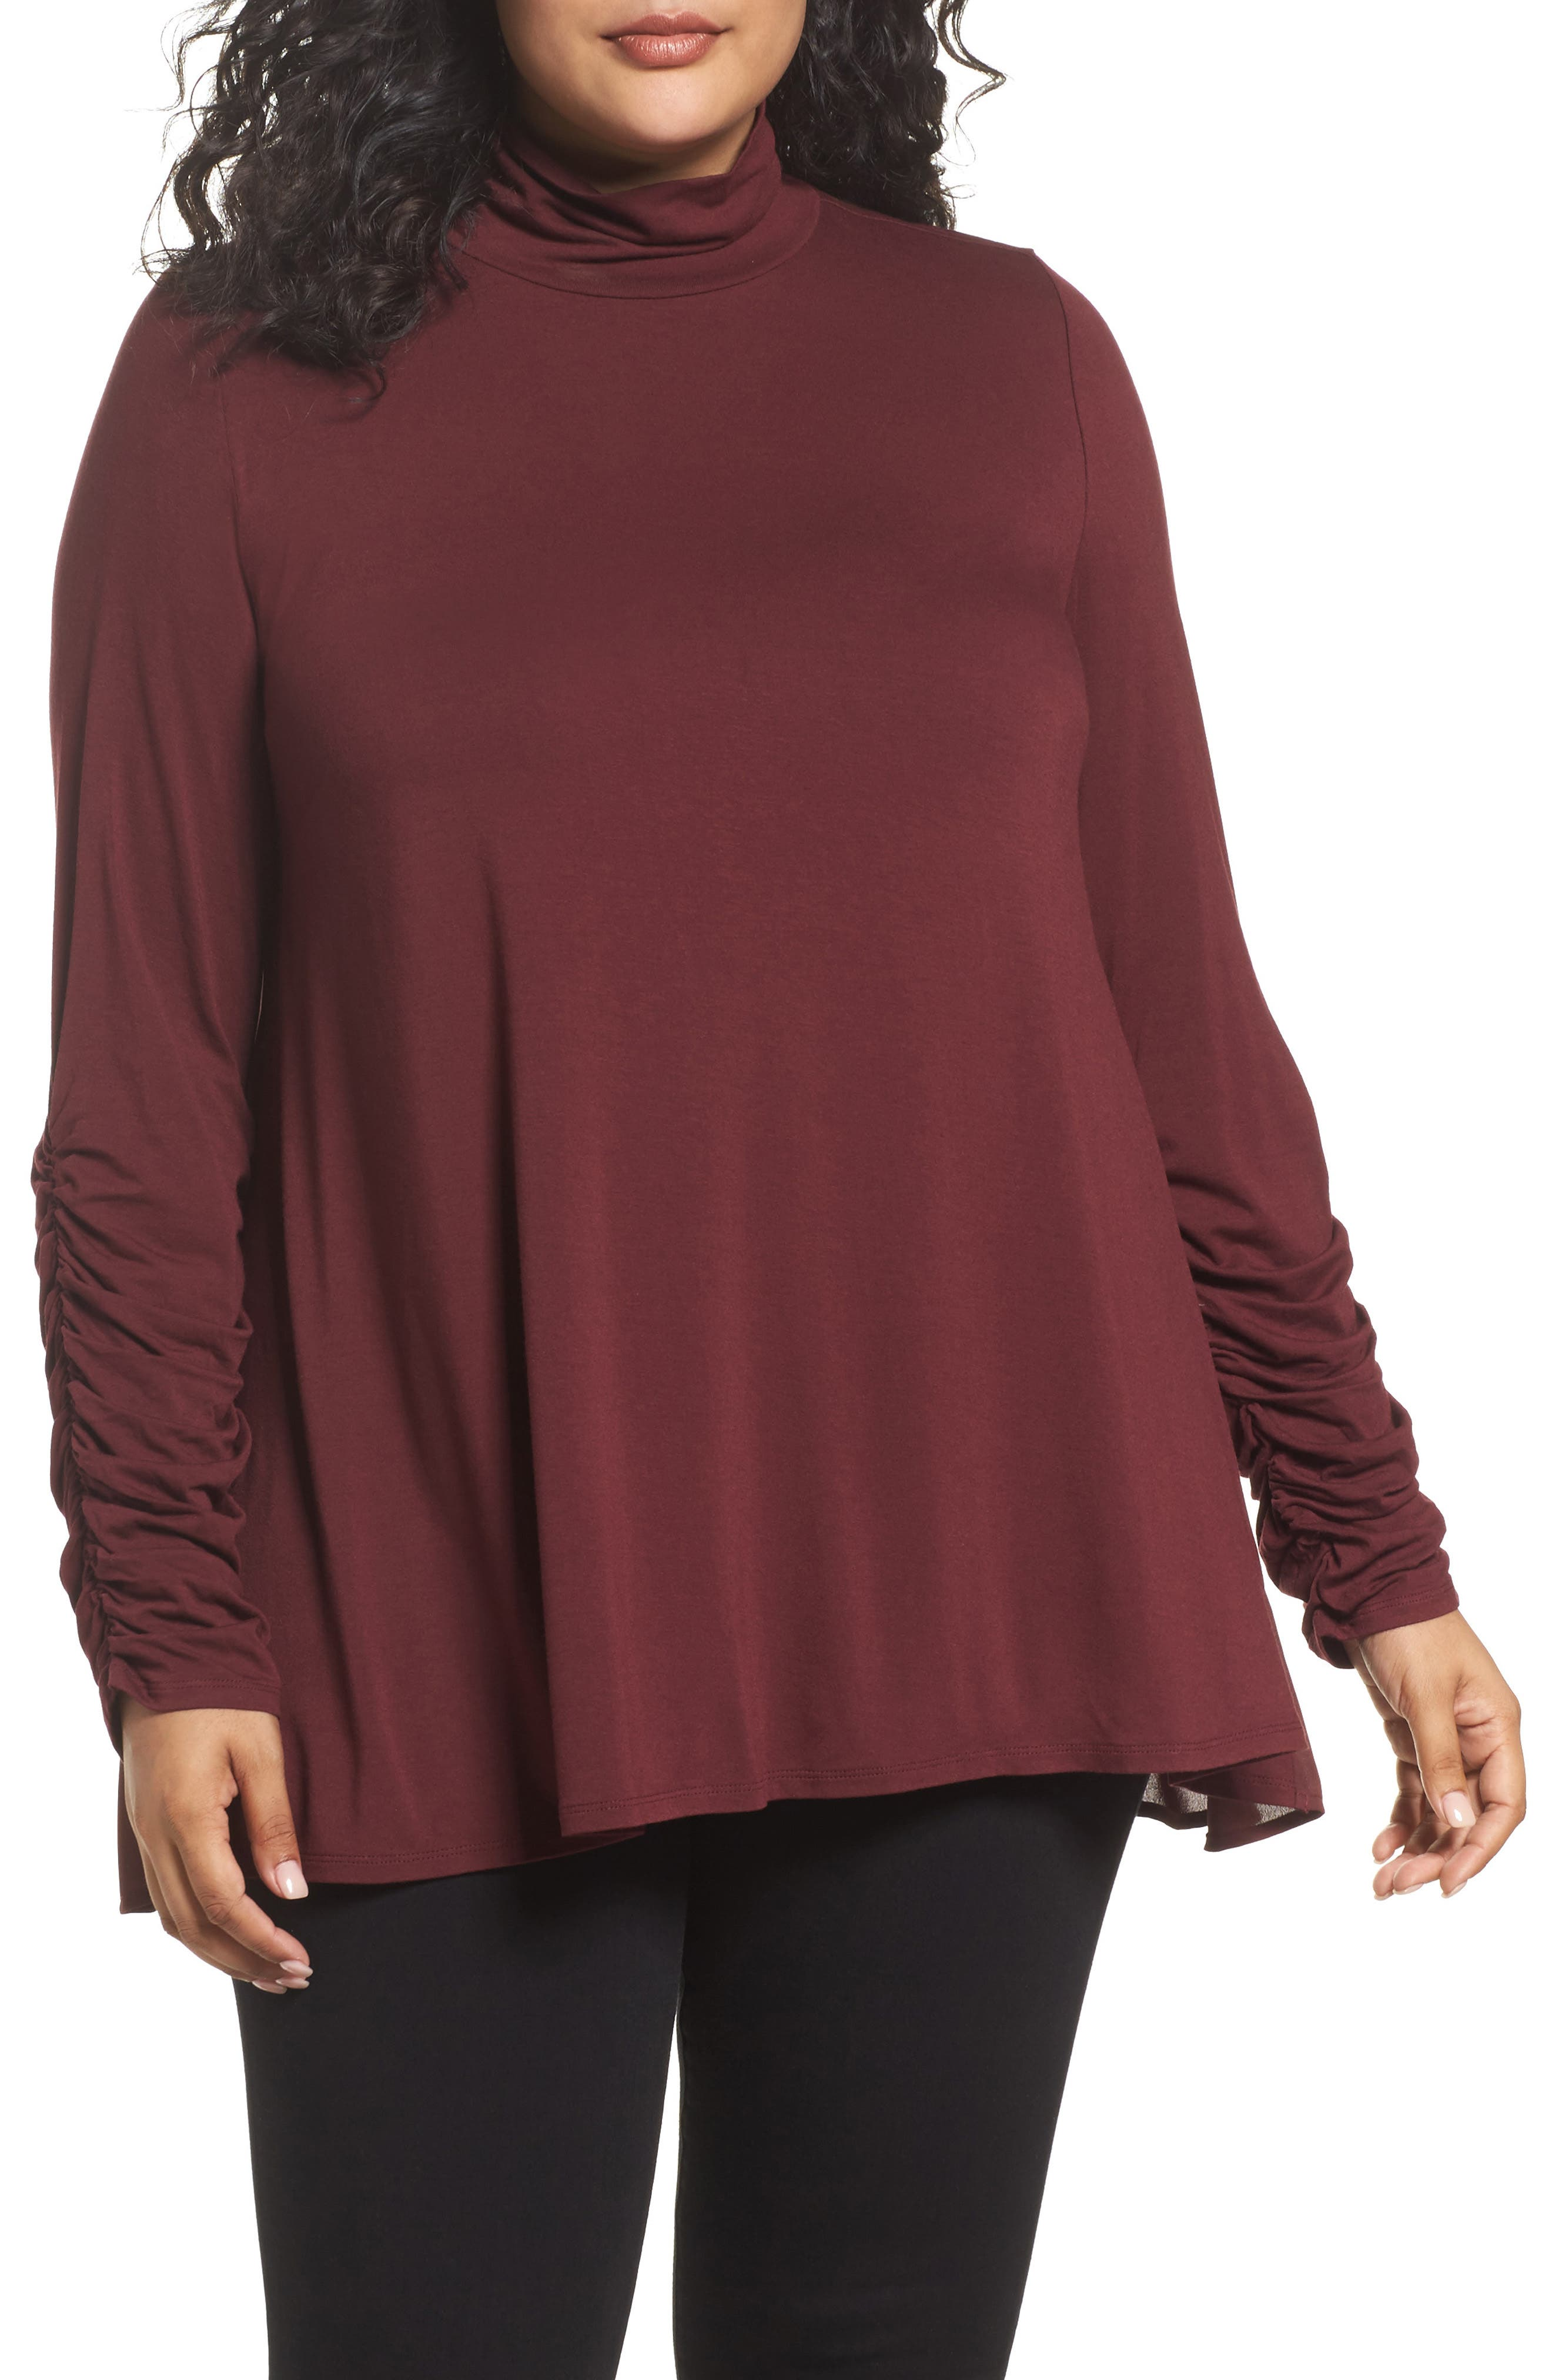 Vince Camuto Ruched Sleeve Turtleneck Top (Plus Size)